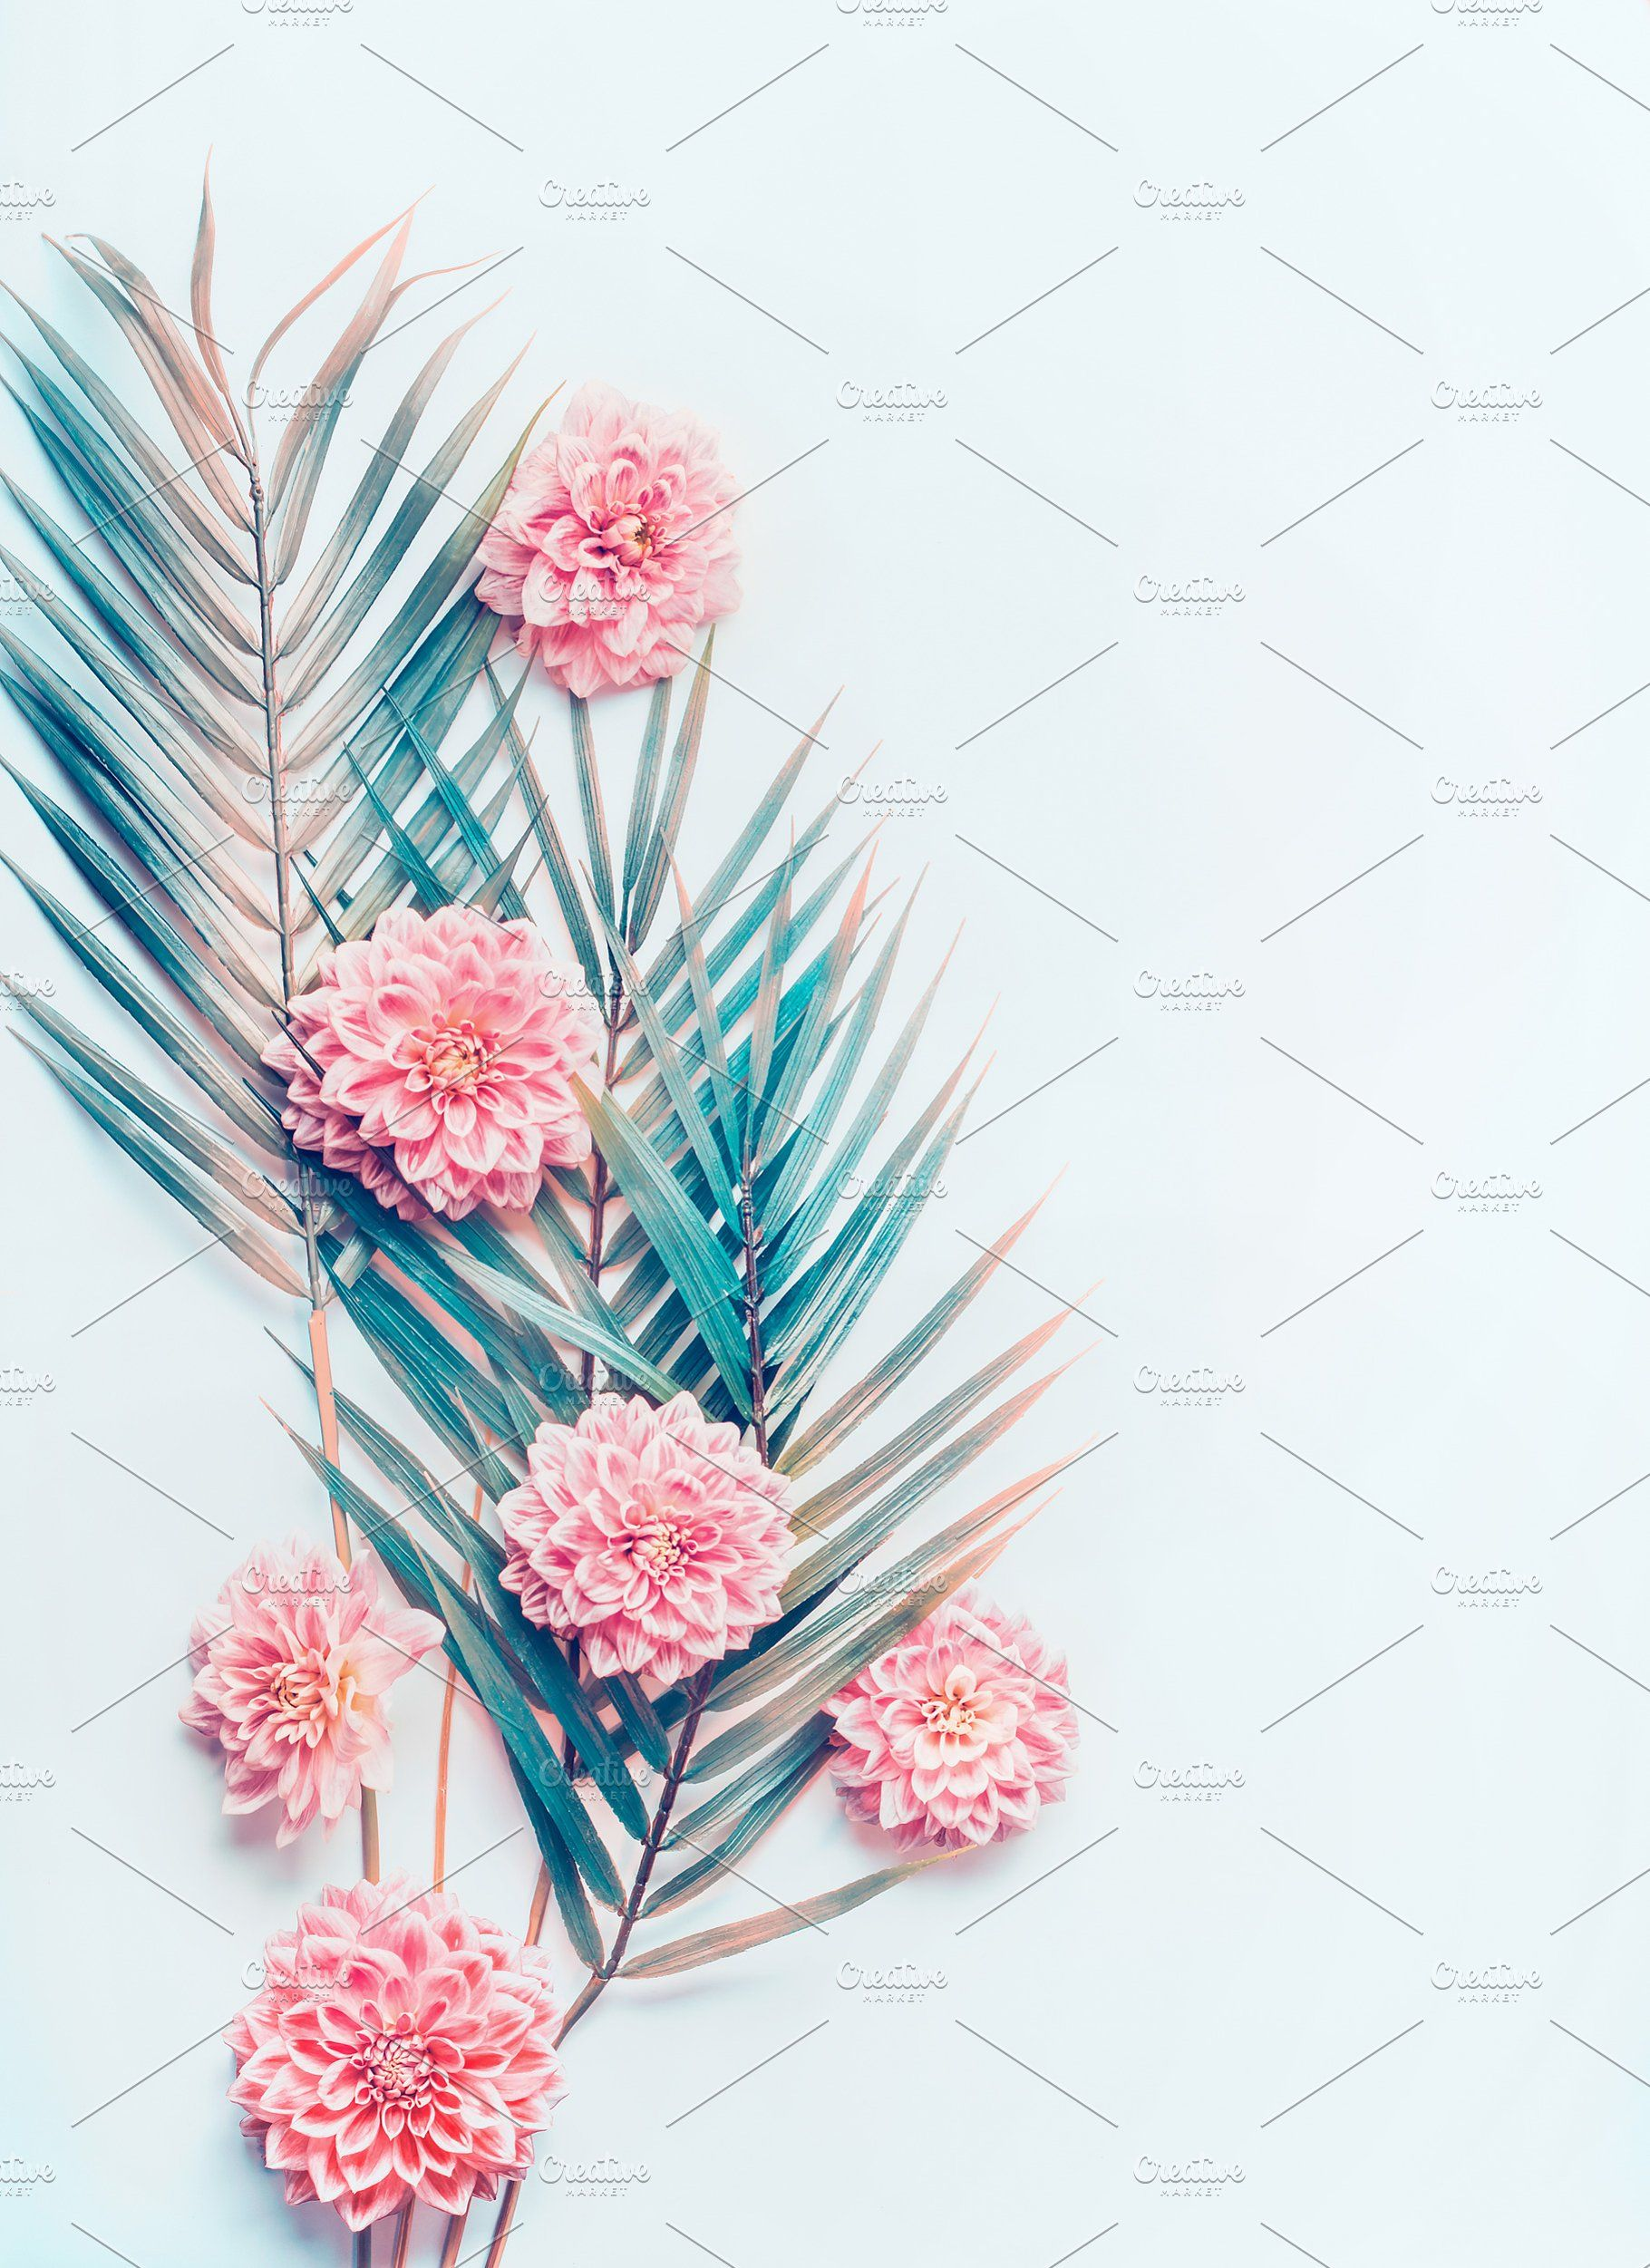 Tropical Leaves And Pink Flowers Pink And Turquoise Wallpaper Flower Wallpaper Pink Flowers Coolest flower turquoise wallpapers